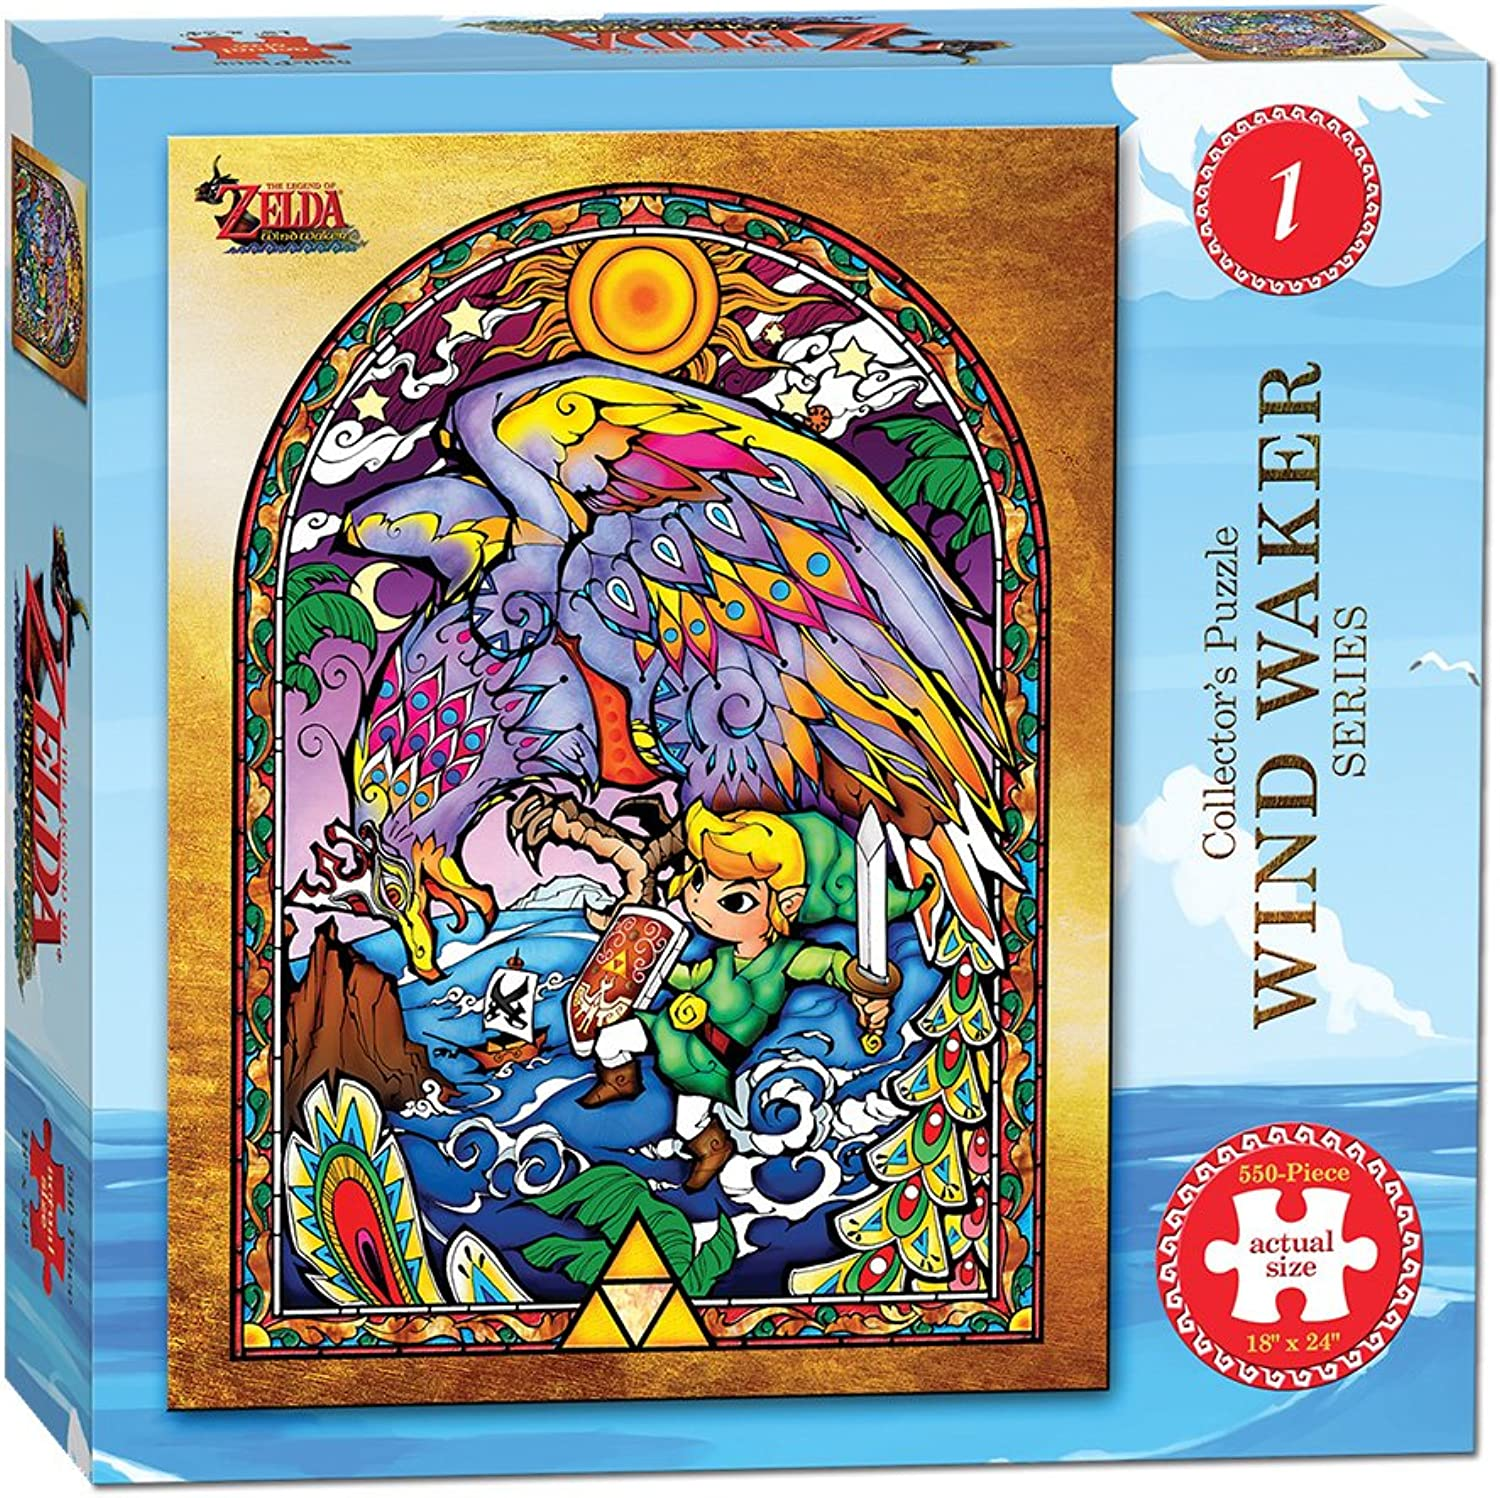 Unbekannt Wind Waker Collector's Puzzle-Serie von The Legend of Zelda.